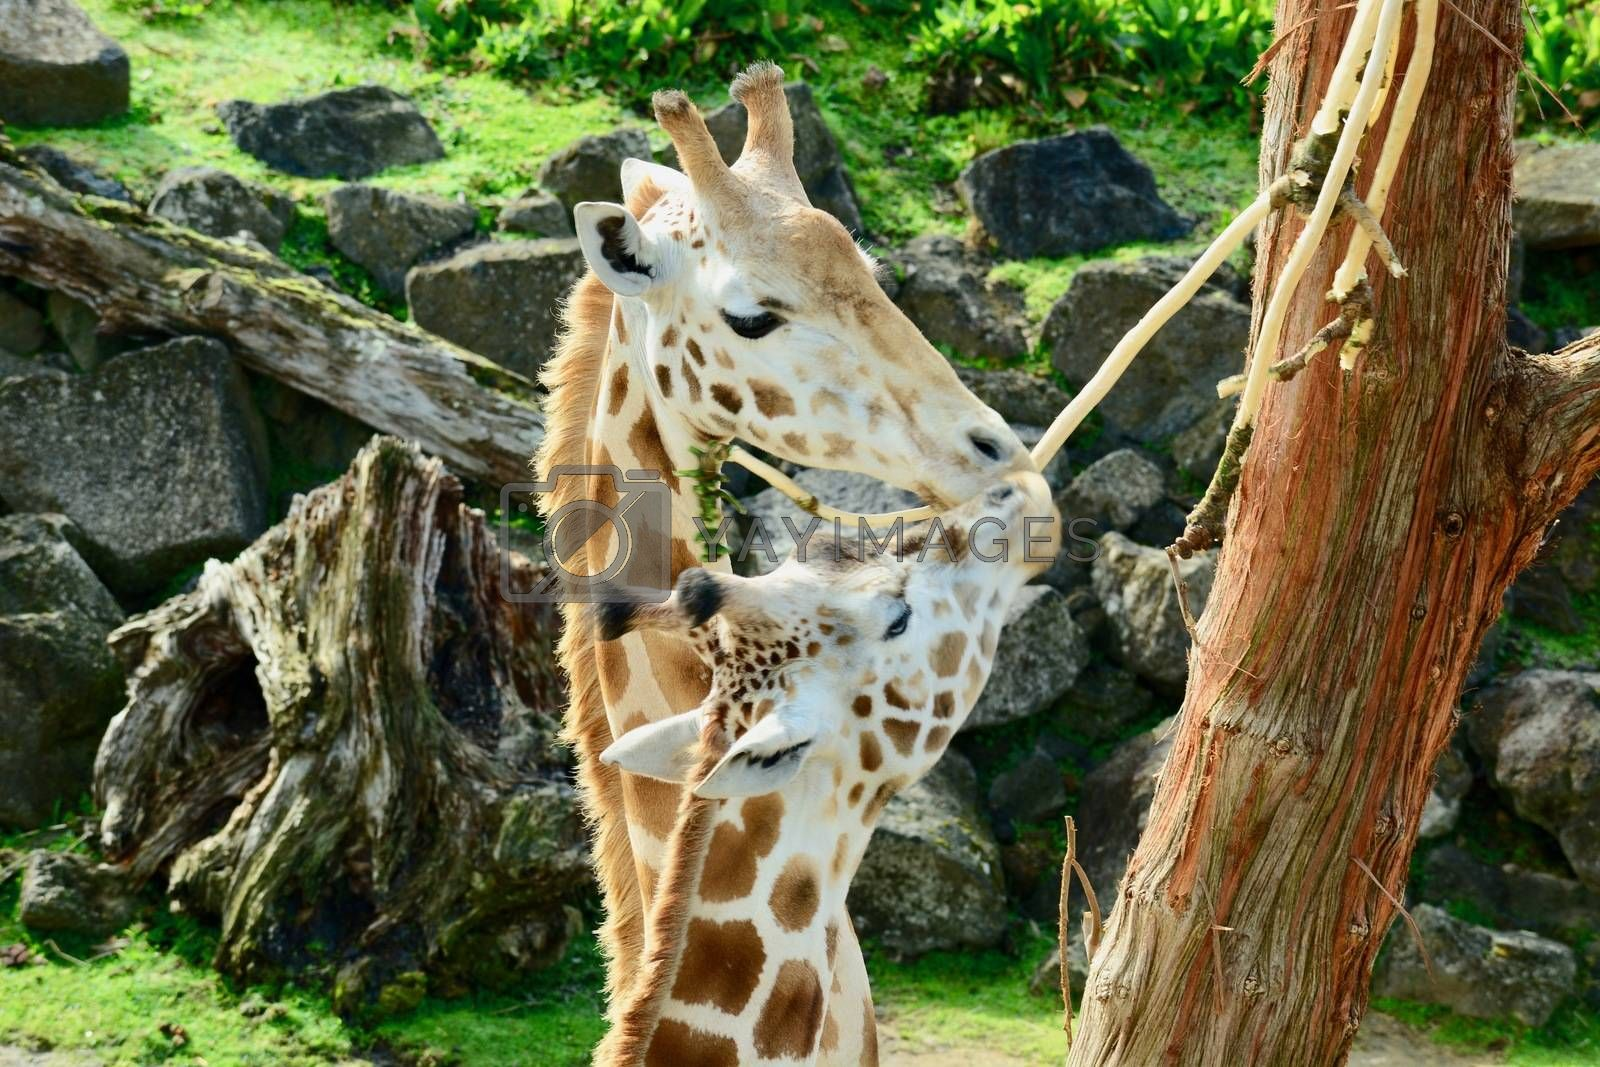 Fully grown giraffes stand 4.3–5.7 m (14.1–18.7 ft) tall, with males taller than females